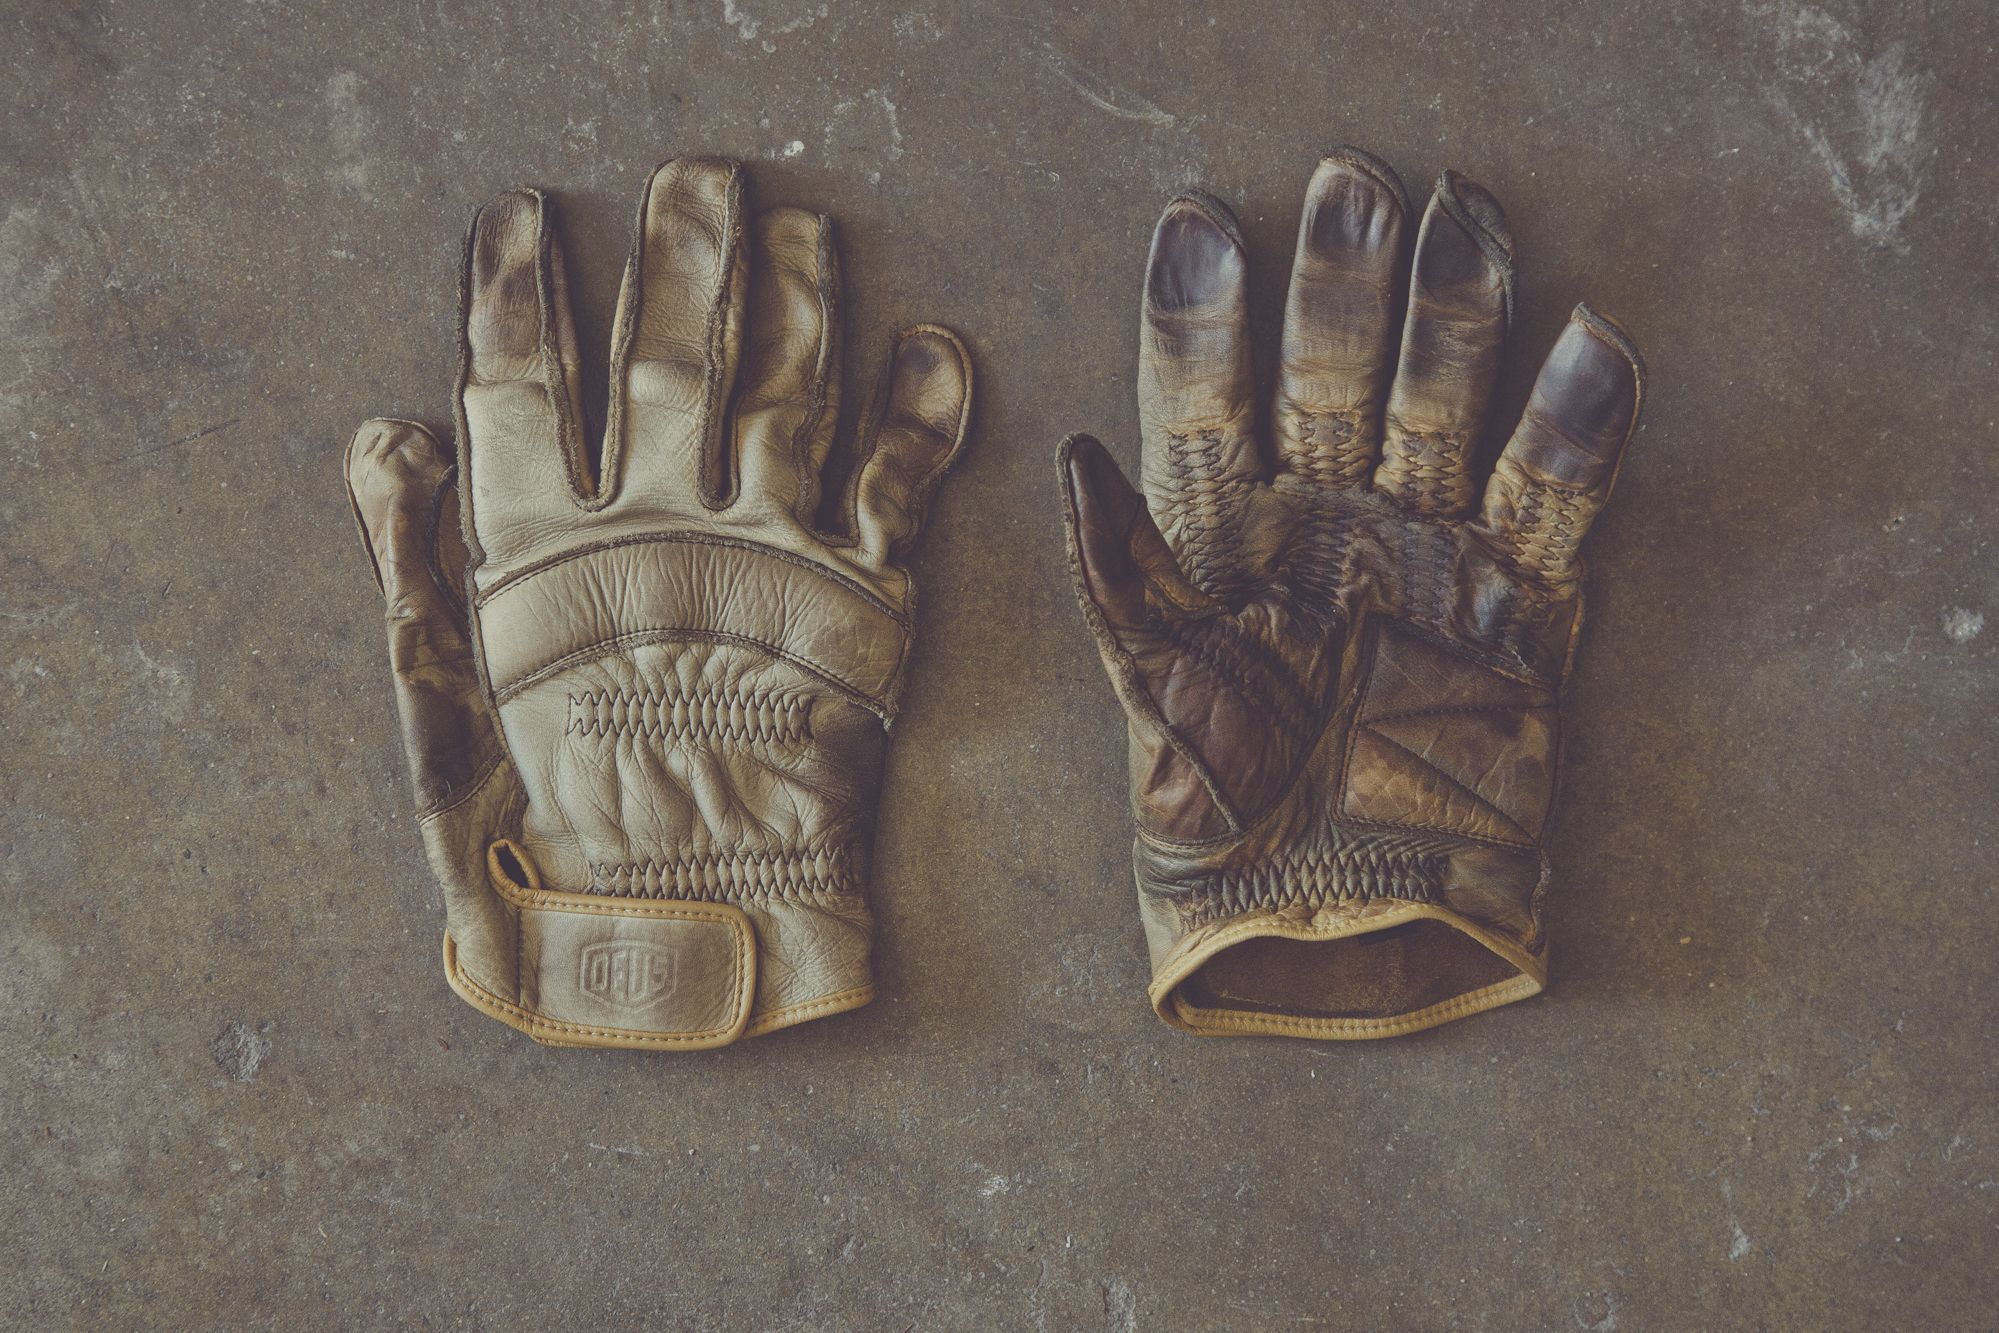 Japanese leather motorcycle gloves - Deux Es Machina Motorcycle Gloves Handcrafted In Japan From Napa Leather